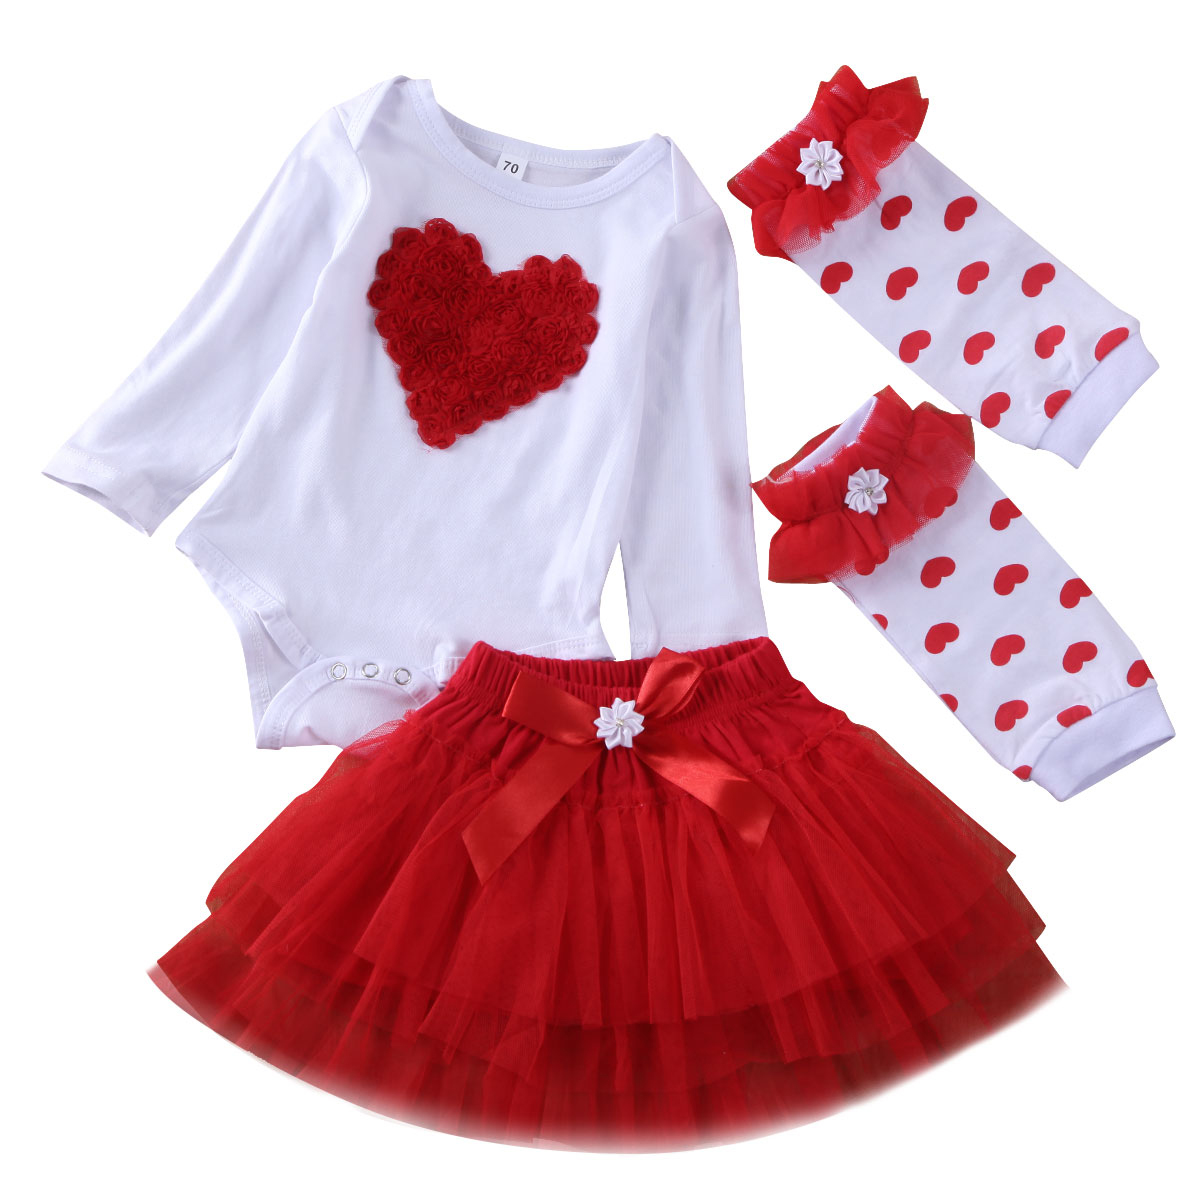 """UK For 0-18M /""""My First Valentine/'s Day/"""" Newborn Baby Romper Sock Pants Outfits"""